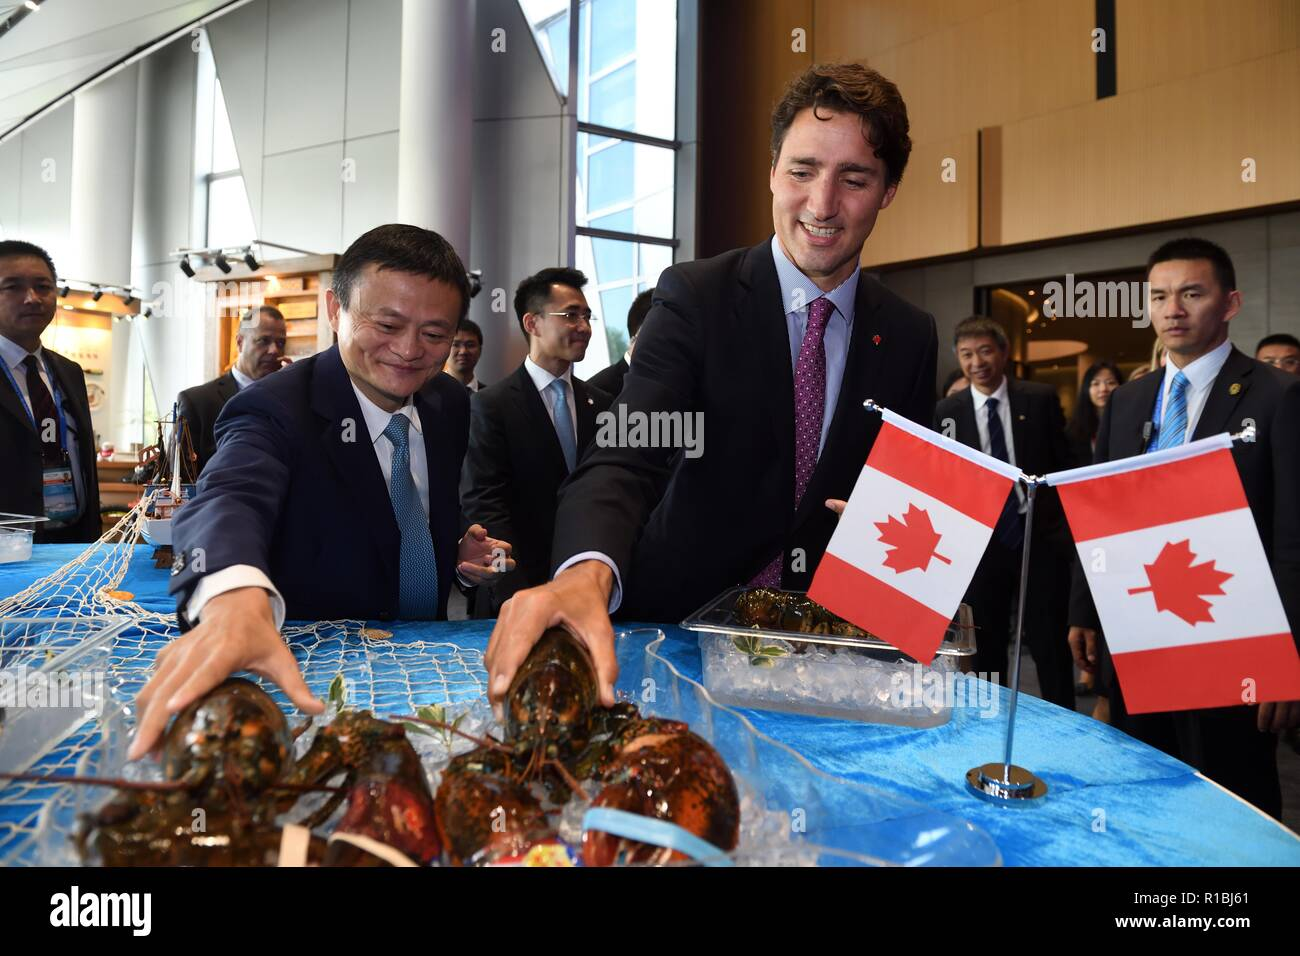 Beijing China 3rd Sep 2016 File Photo Taken On Sept 3 2016 Shows Canadian Prime Minister Justin Trudeau And Alibaba Chairman Jack Ma Grabbing Lobsters Imported From Canada At The Headquarters Of Free, fast and easy way find a job of 111.000+ postings in canada and other big cities in canada. alamy